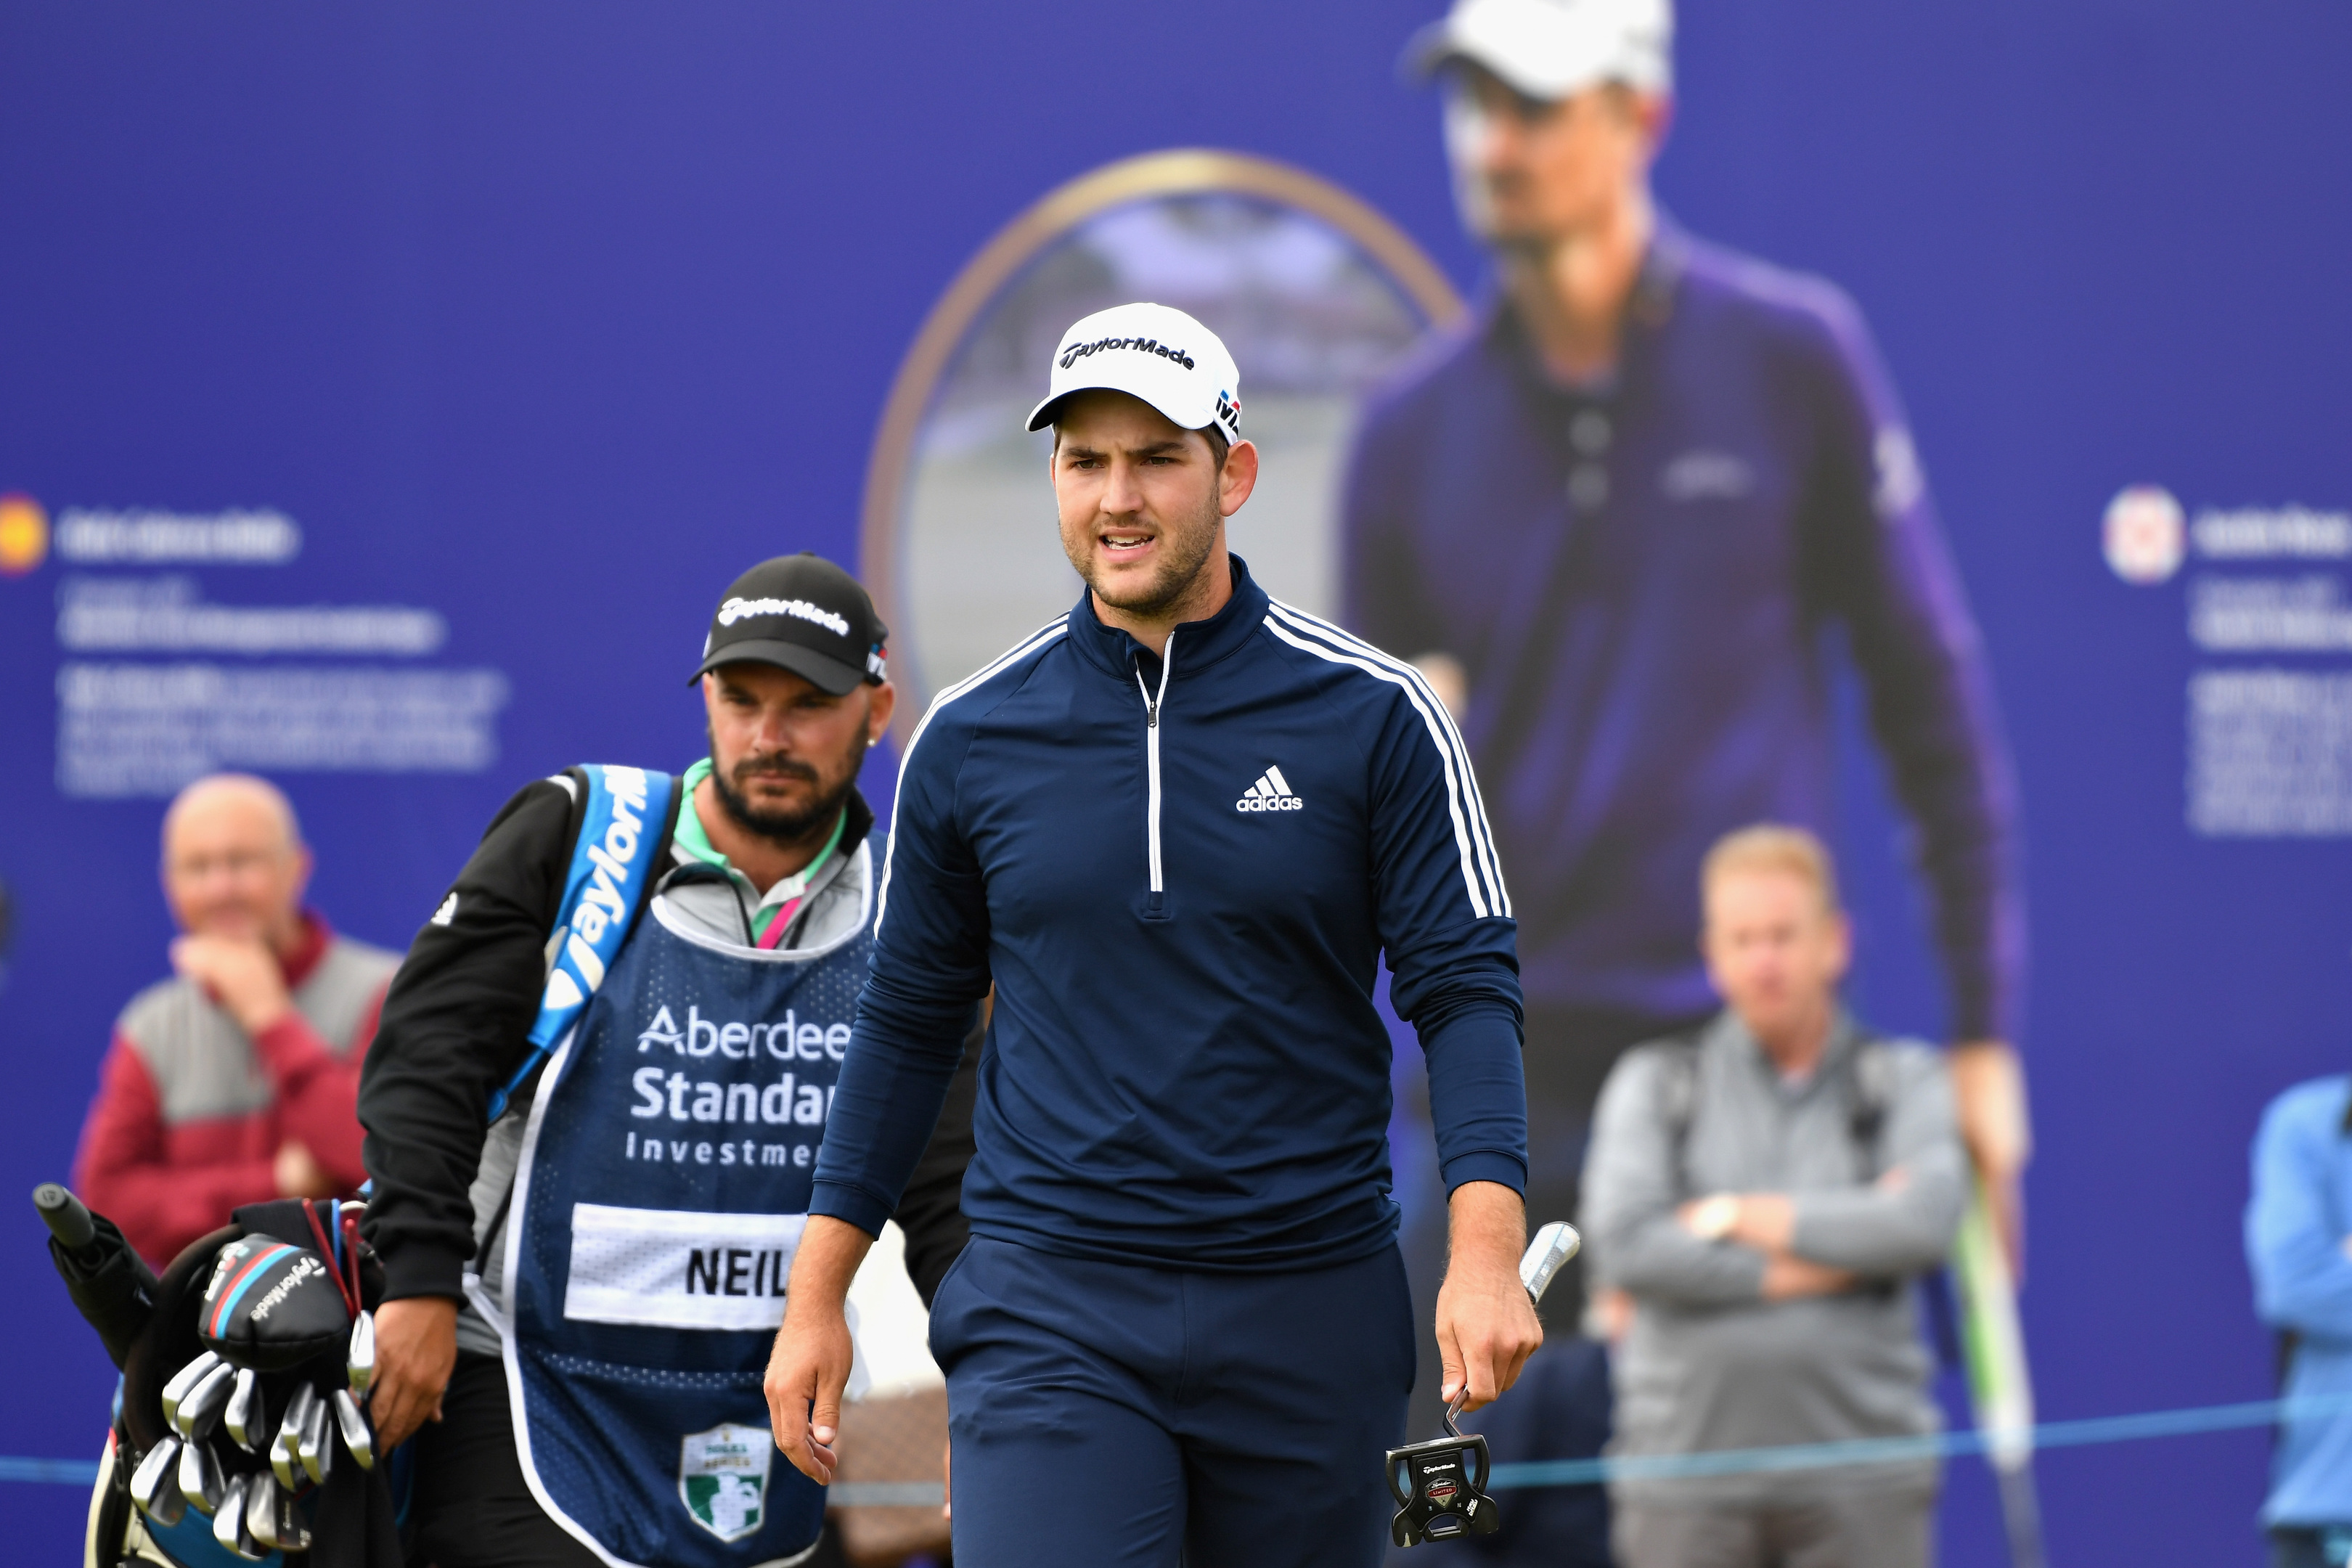 Bradley Neil reacts to a putt on hole eighteen during day one of the Aberdeen Standard Investments Scottish Open.